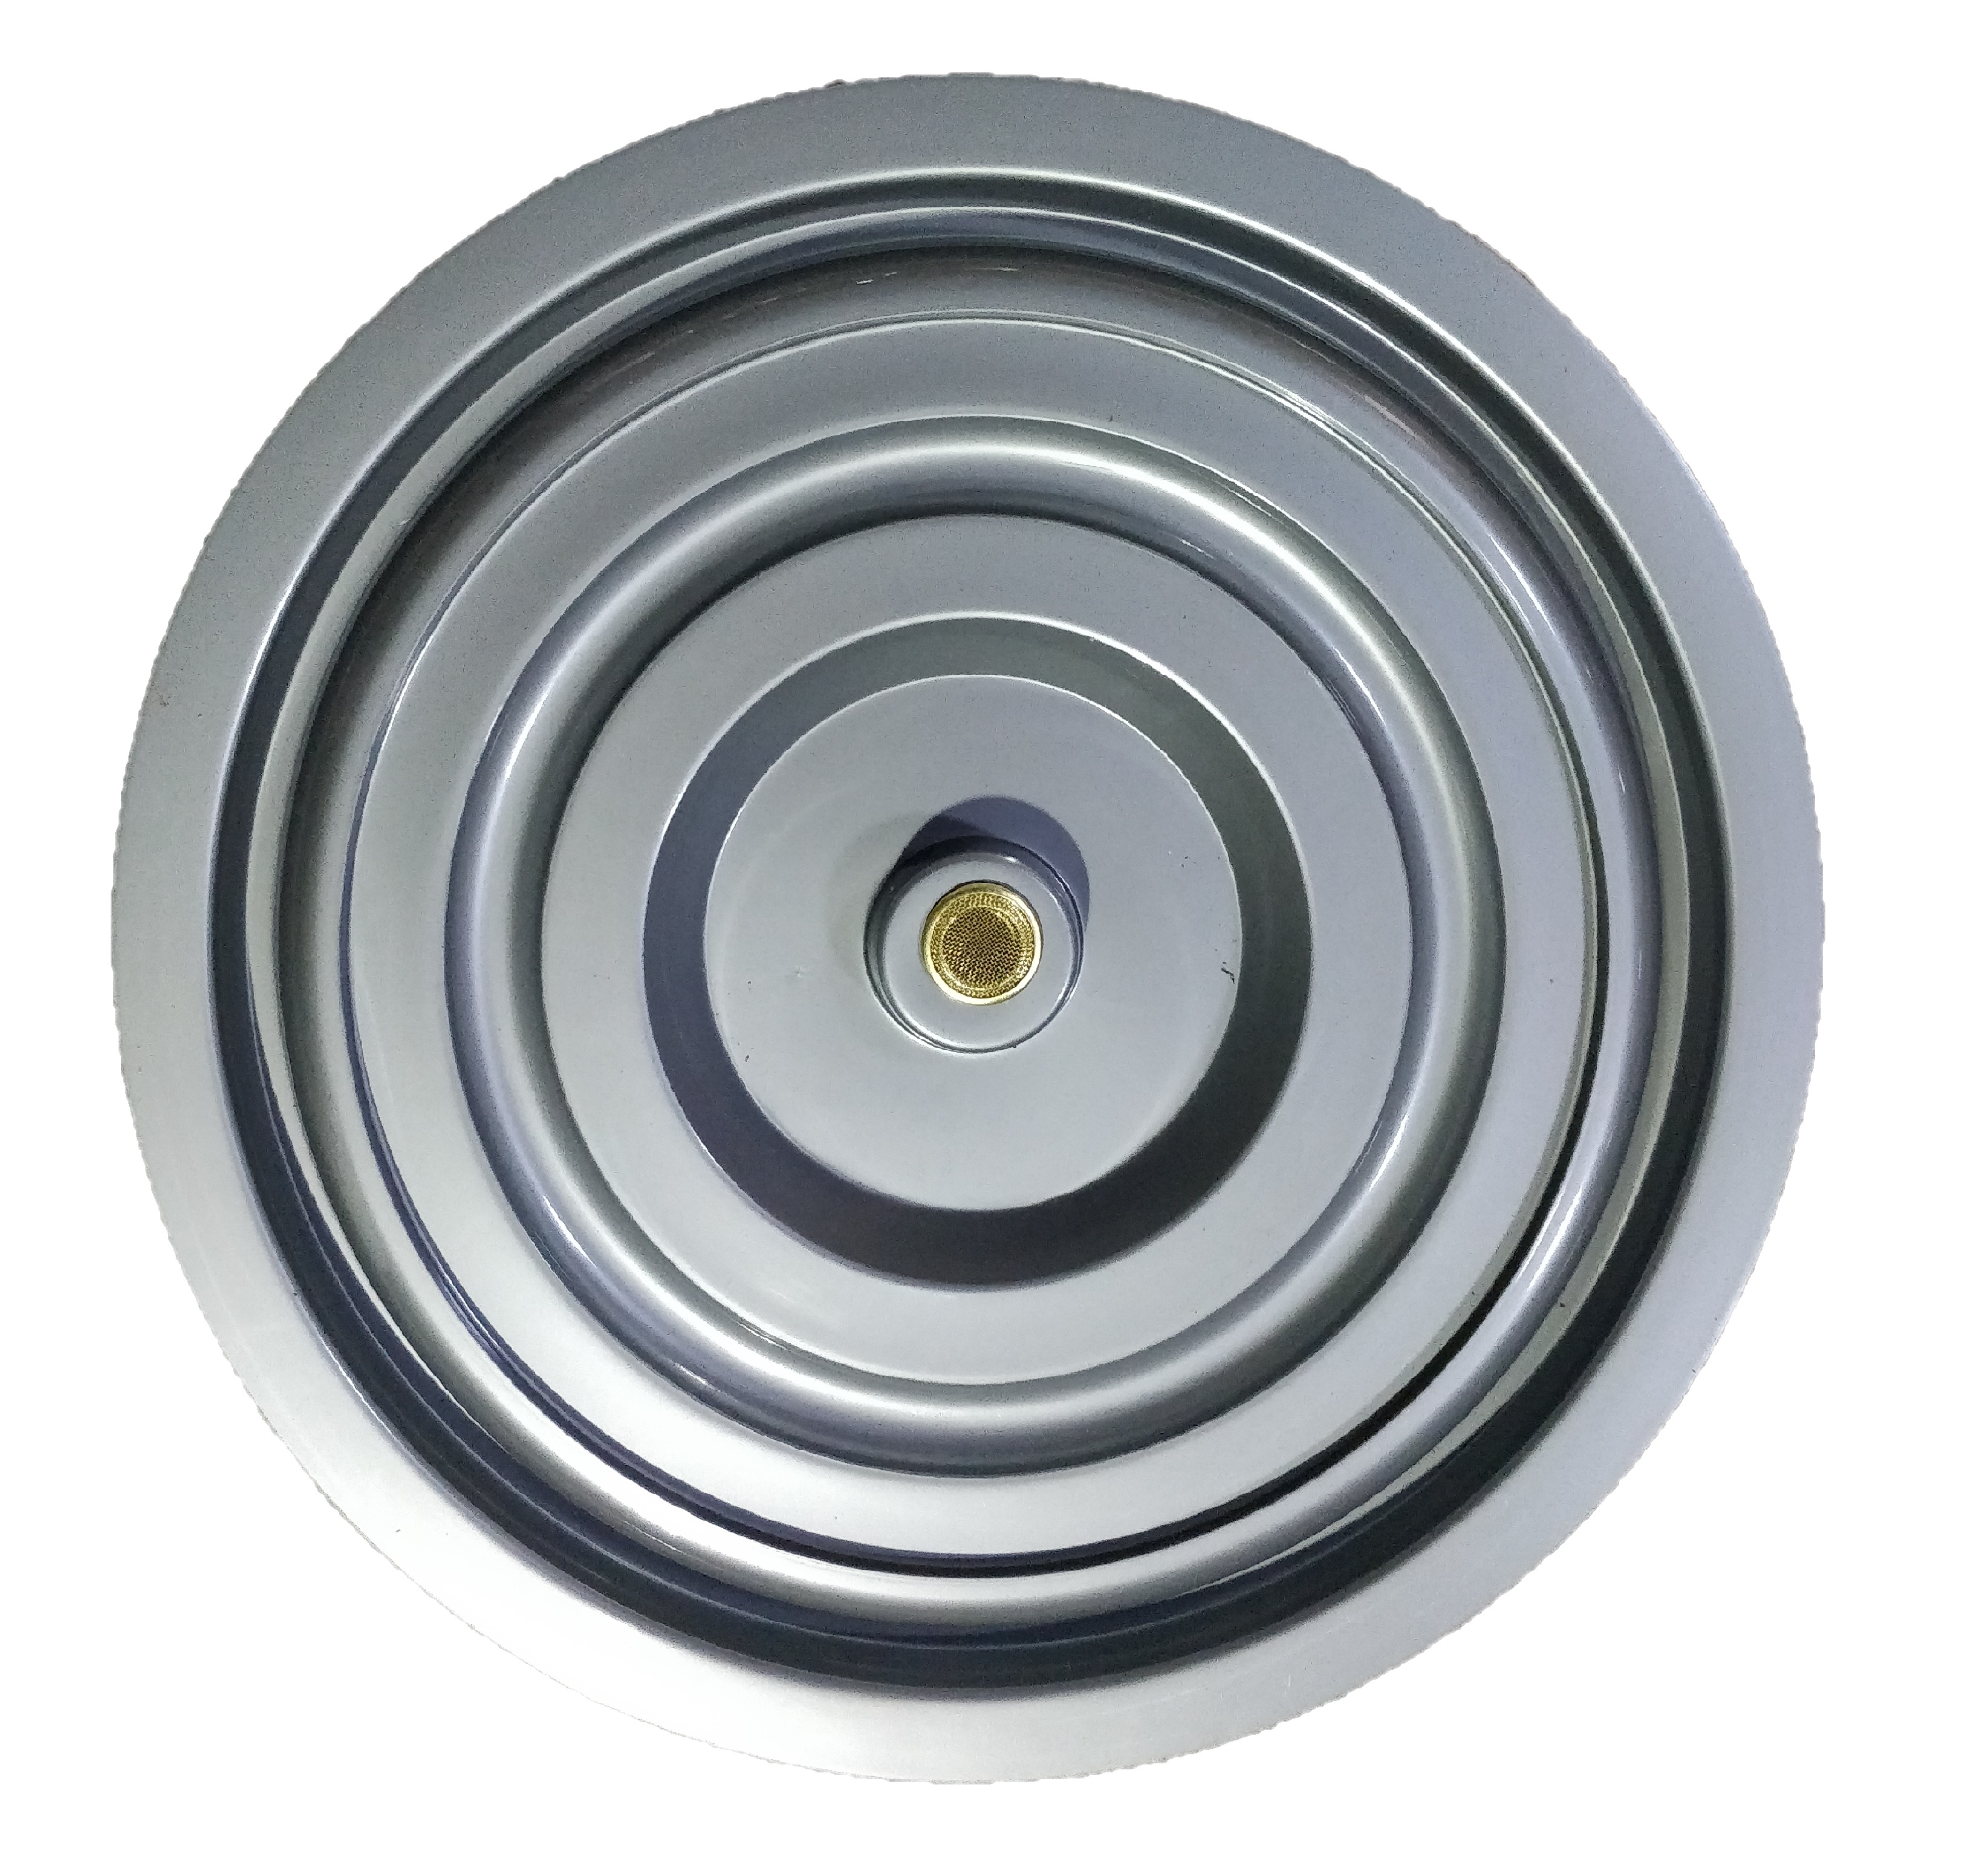 If you need a replacement bin lid for your midi wormery, this 27L Spare Silver Lid could well be the answer. This circular lid is compatible with the